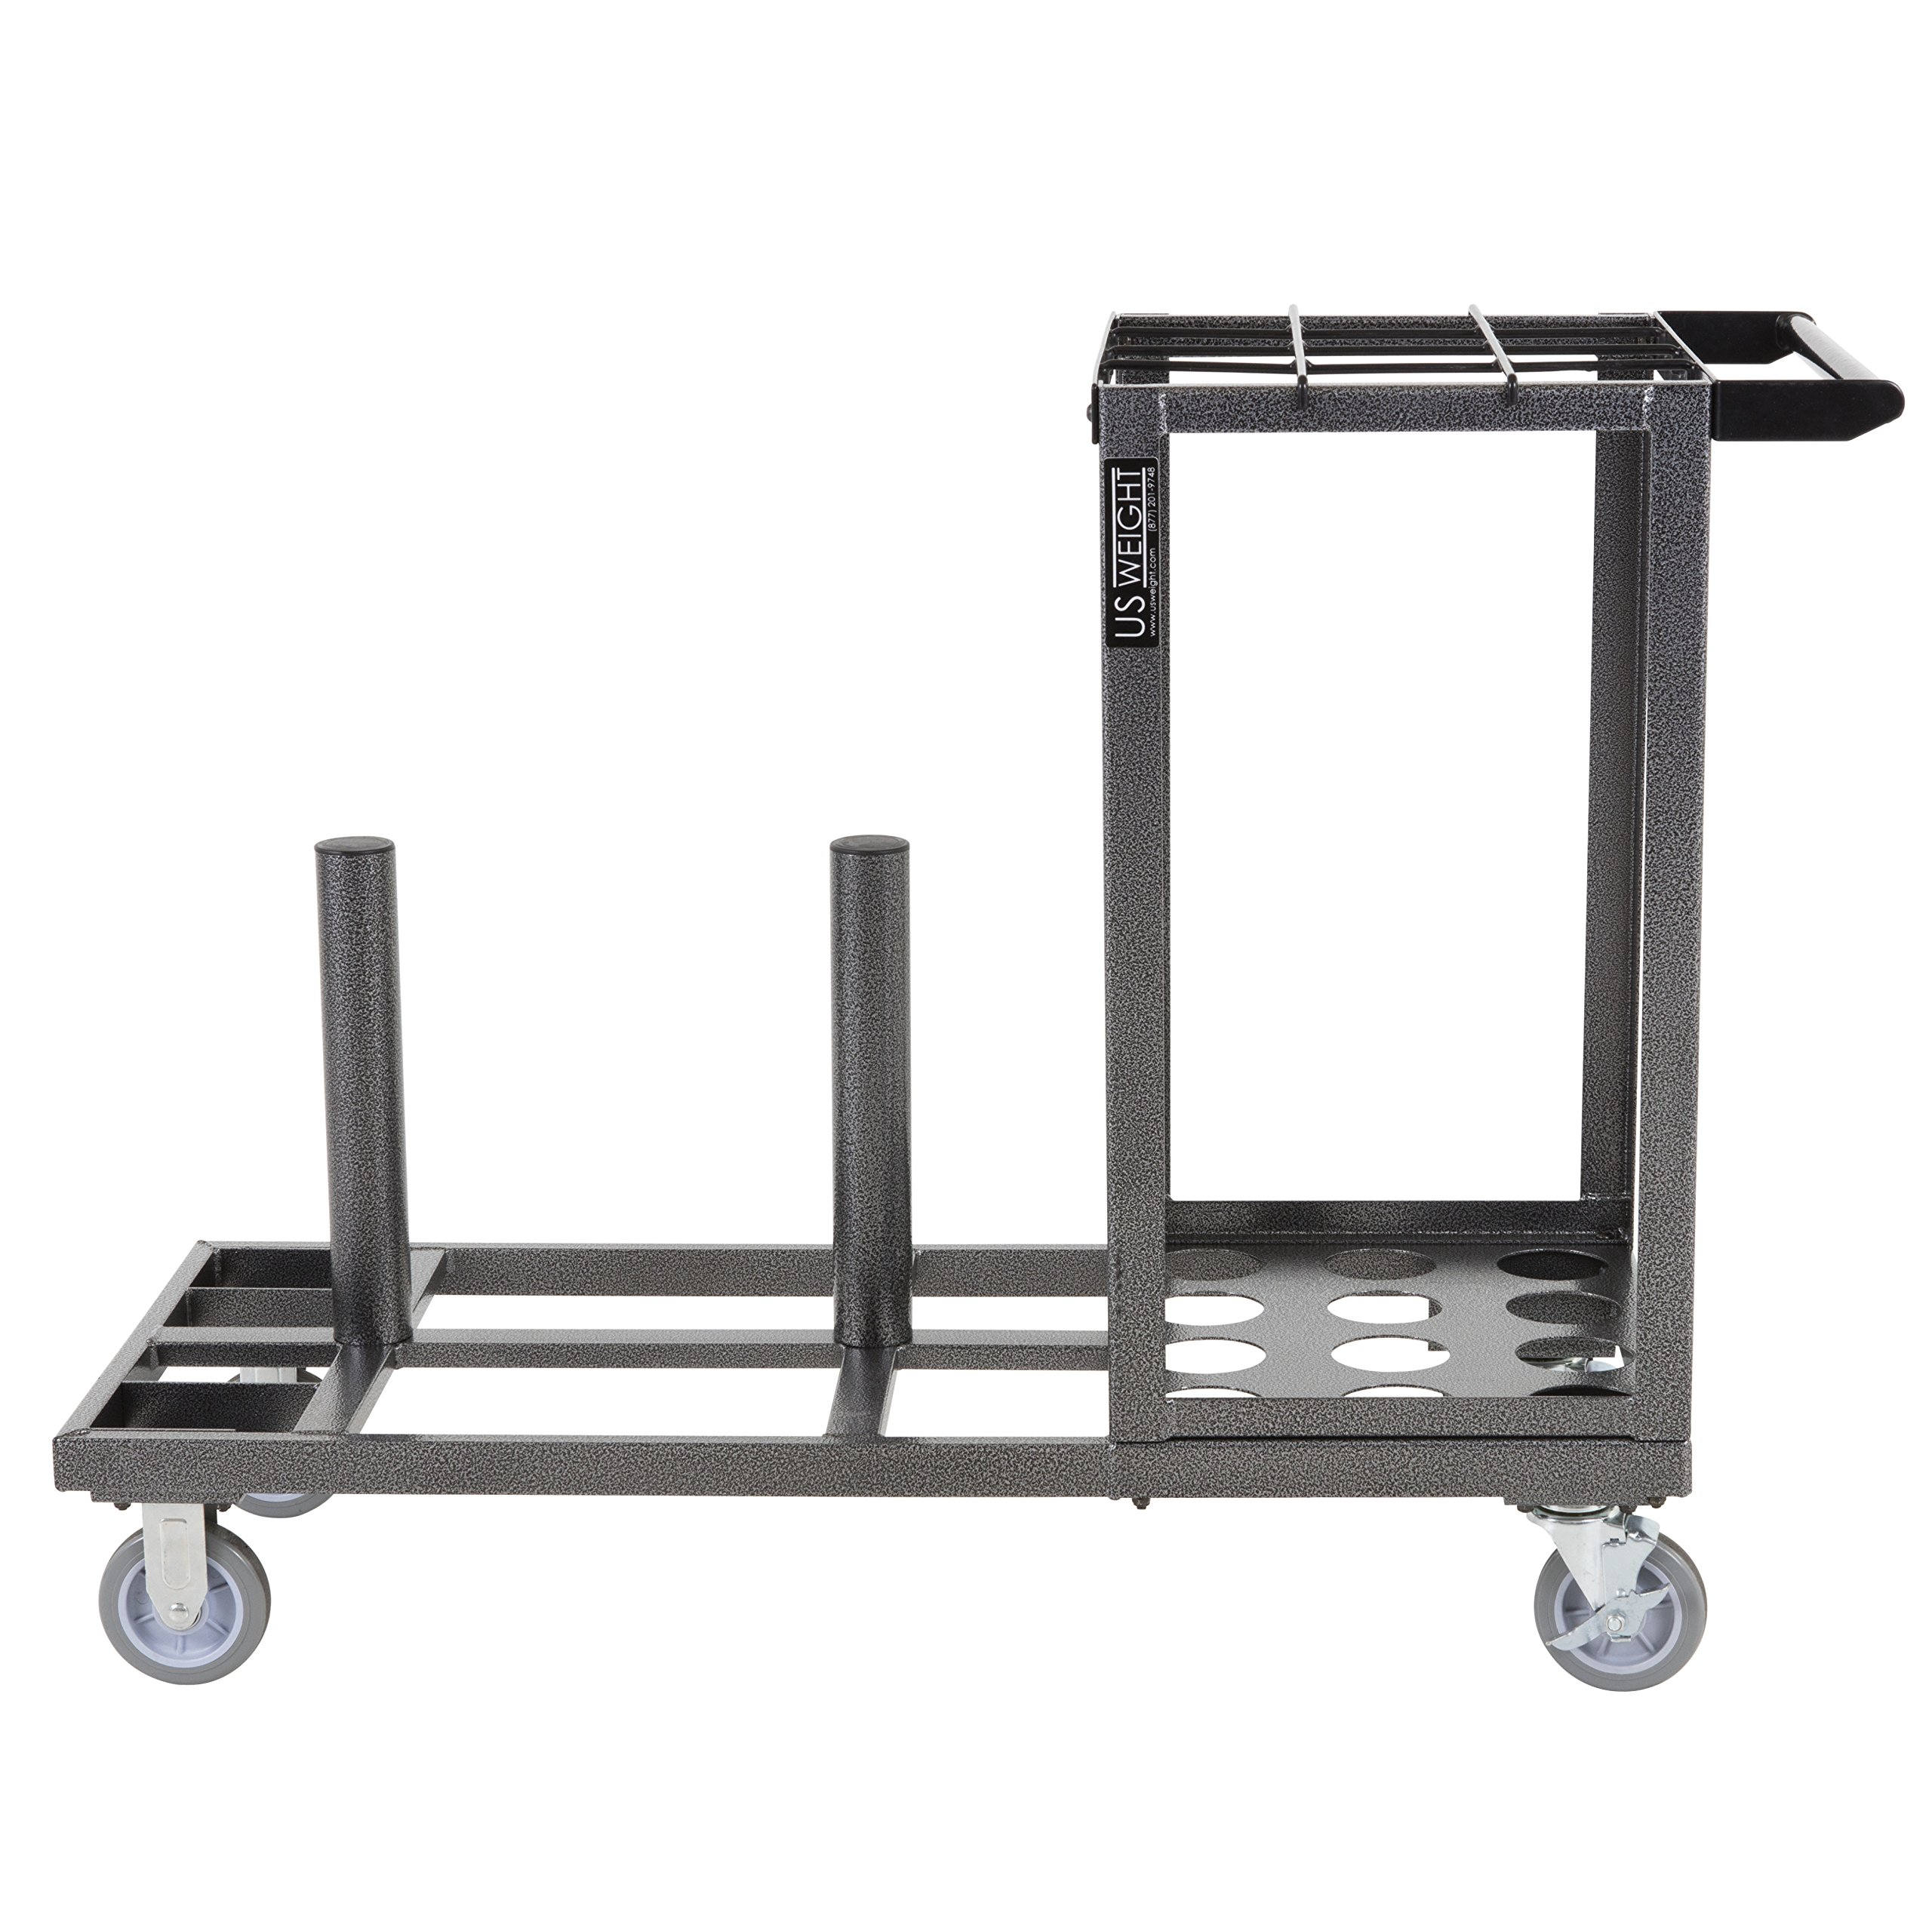 US Weight Statesman Stanchion Cart Kit – 12 Premium Black Steel Stanchions with Cart by US Weight (Image #21)